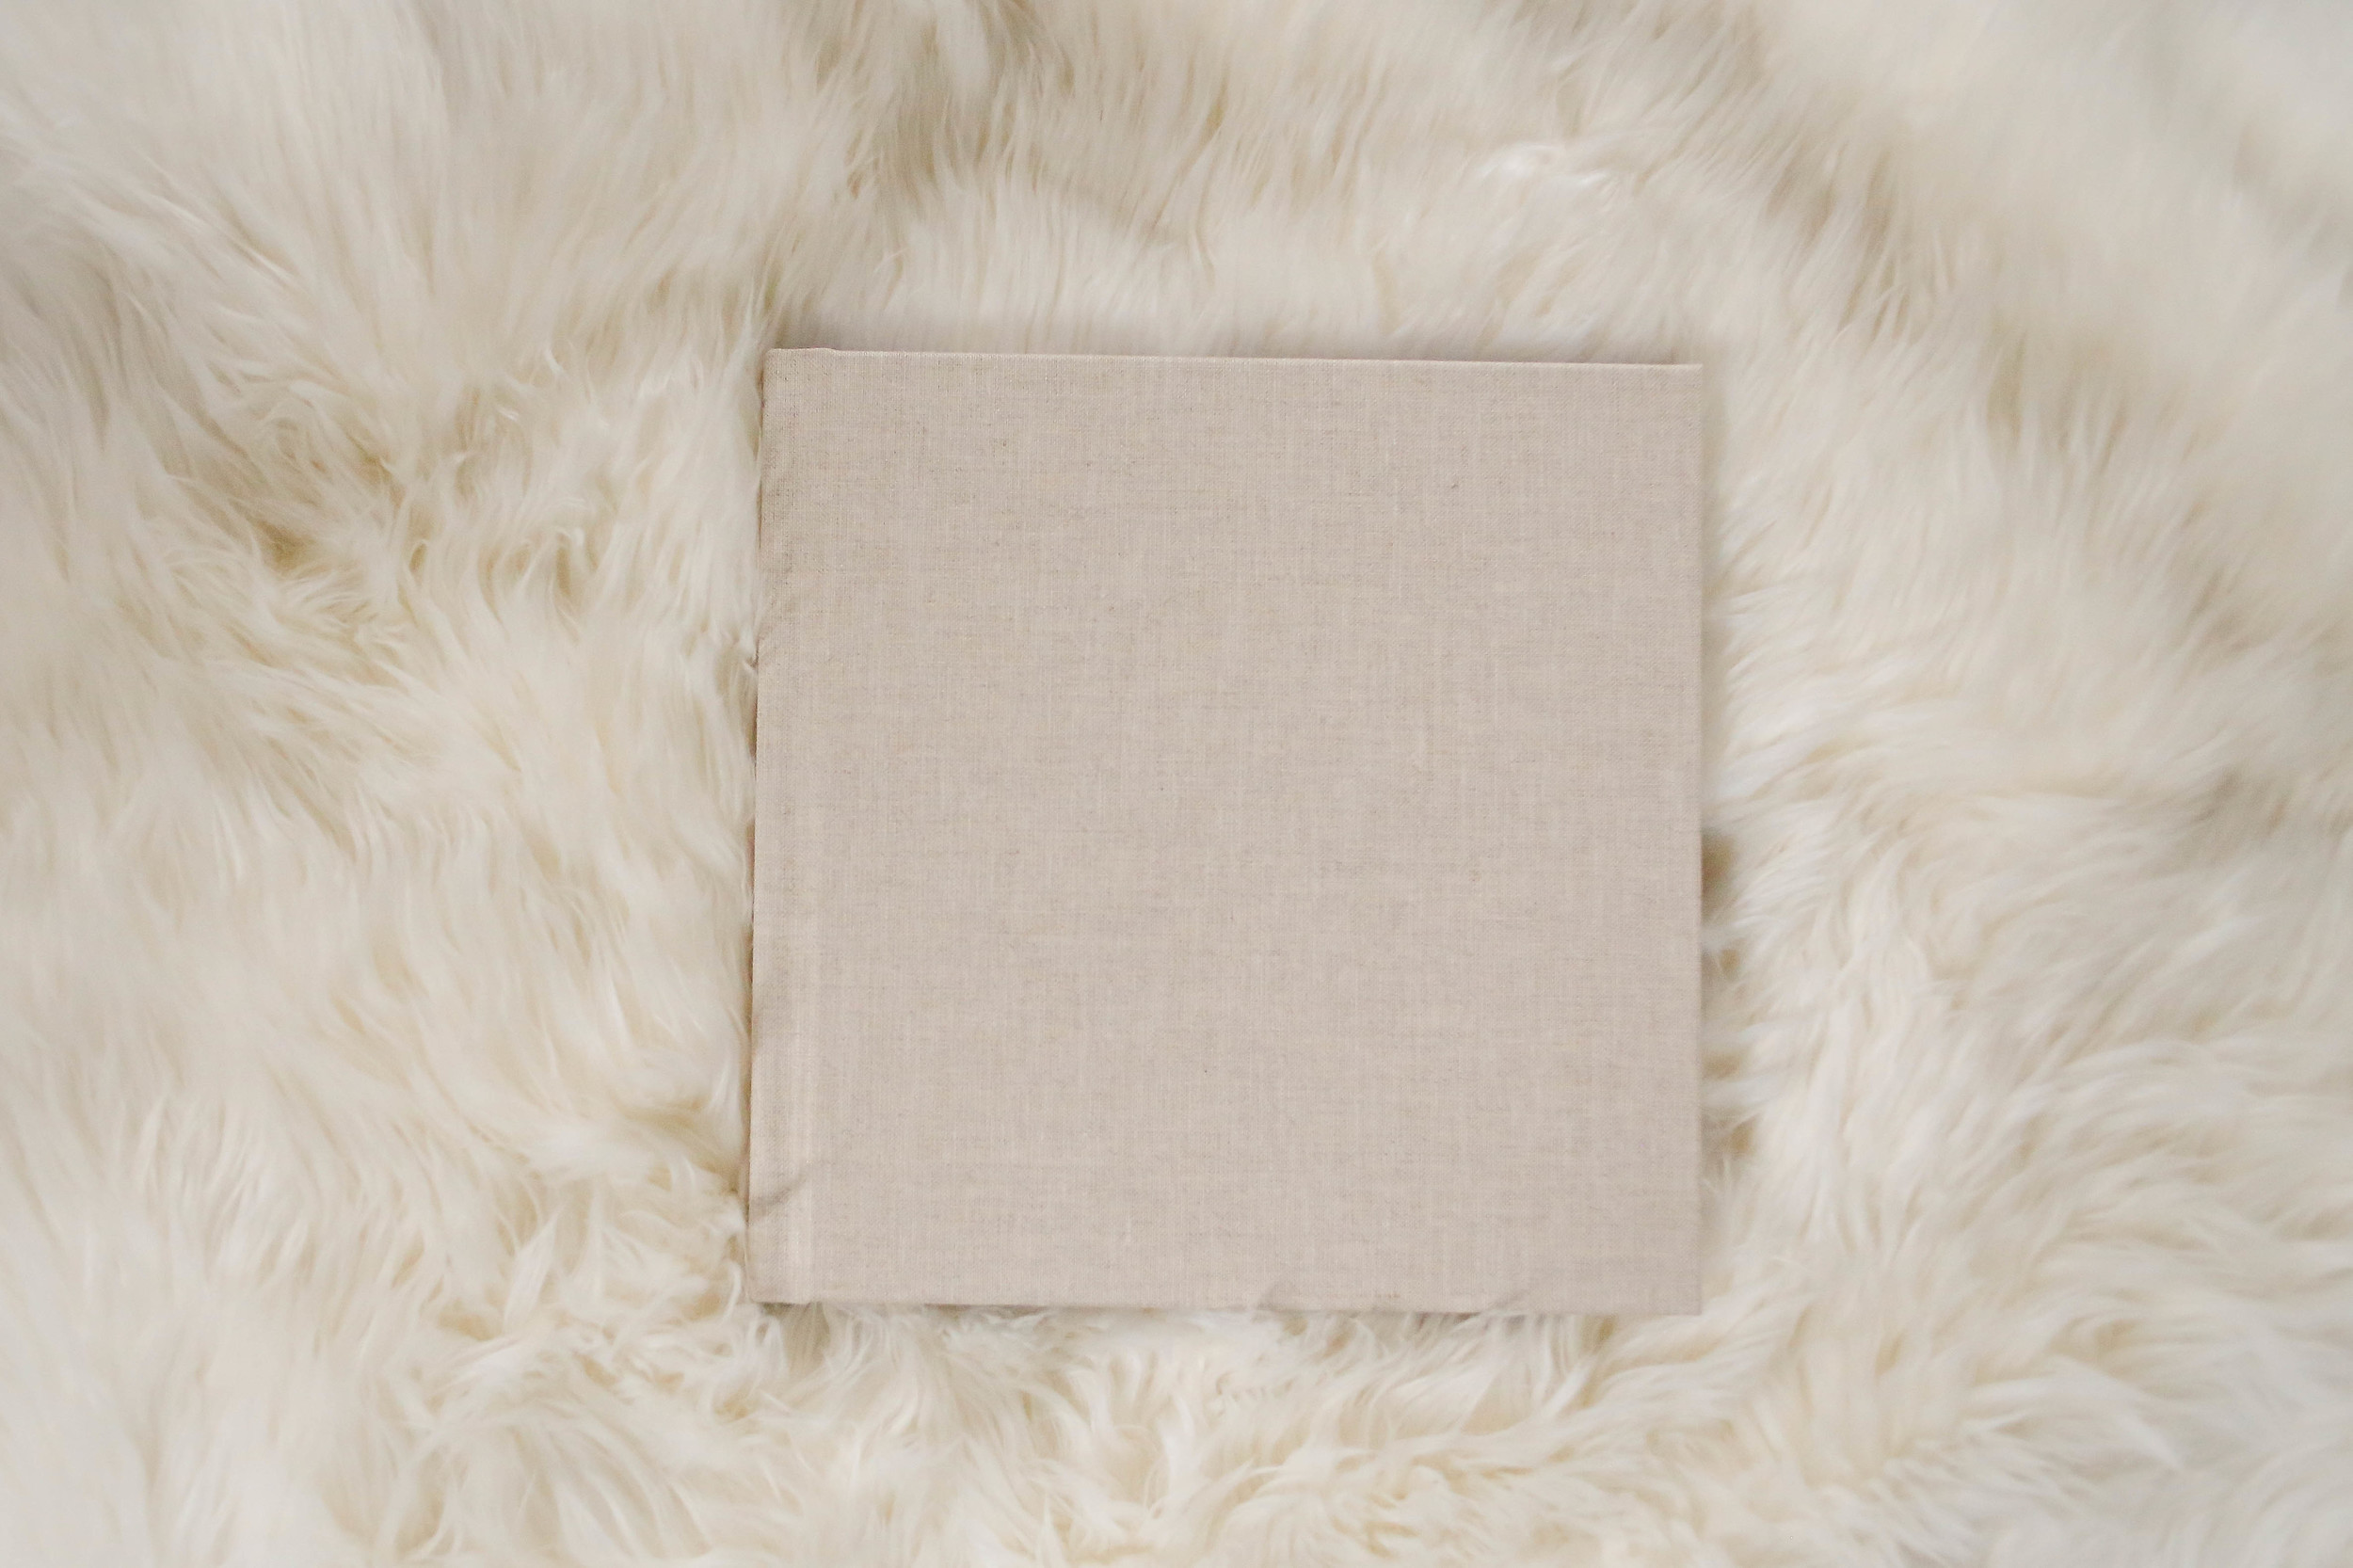 100% Cotton linen album cover.